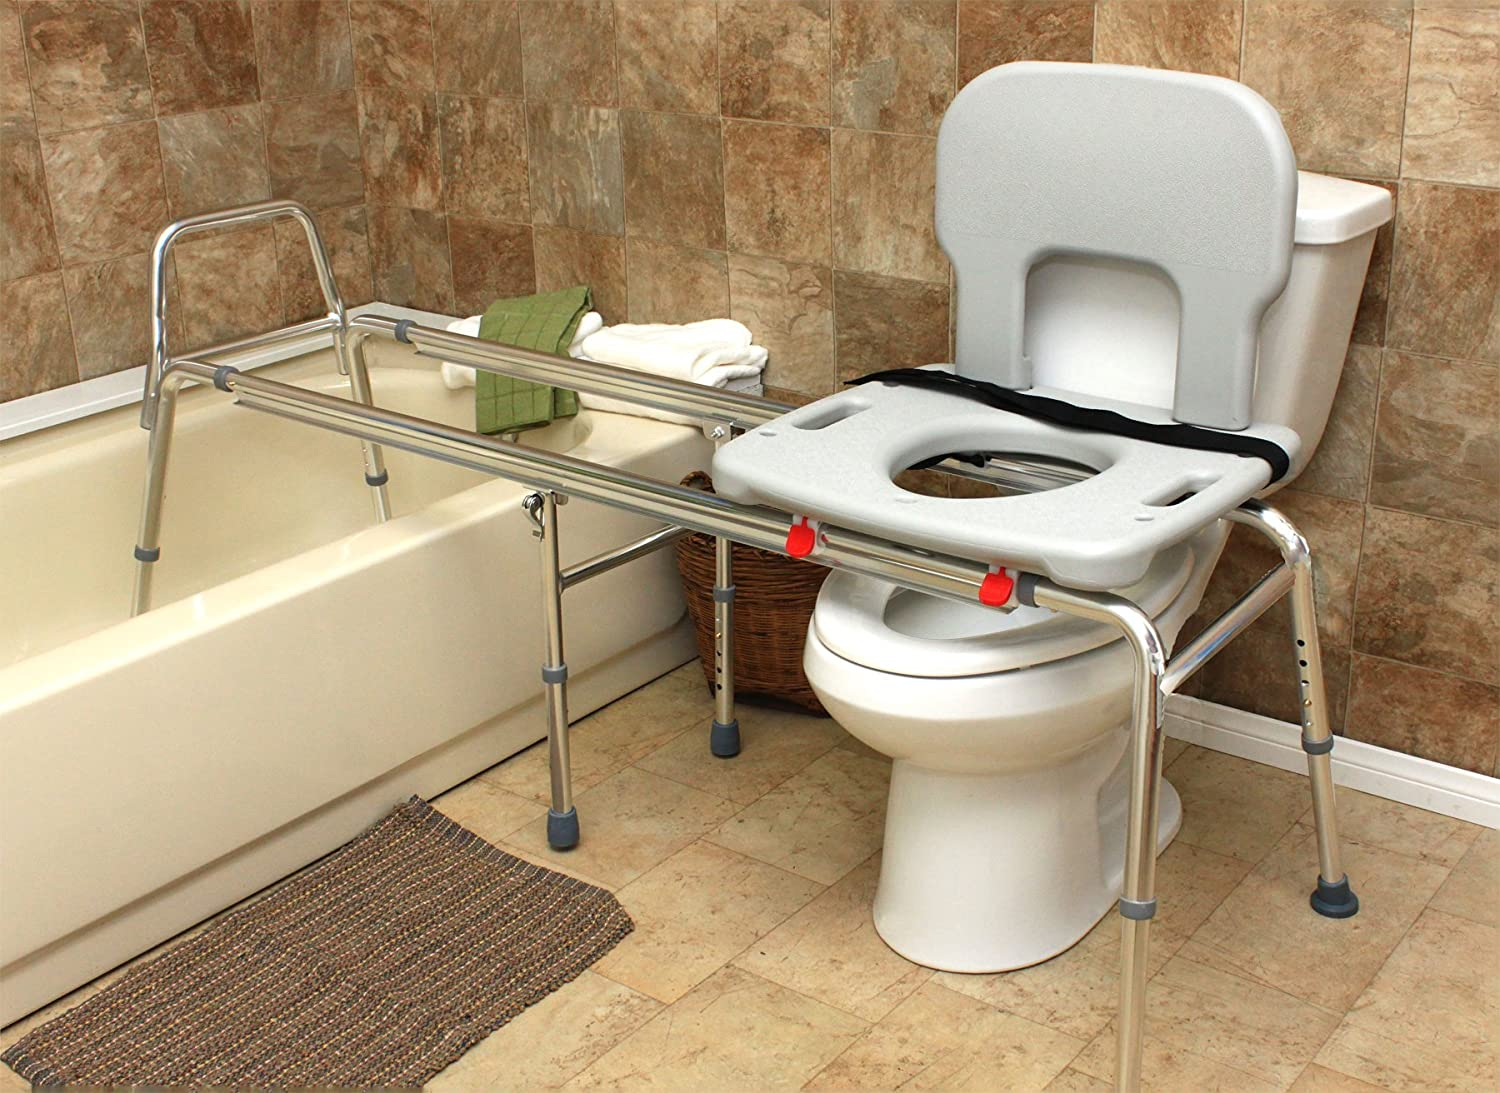 Amazon.com: Eagle Health Supplies - Toilet-to-Tub Sliding Transfer ...